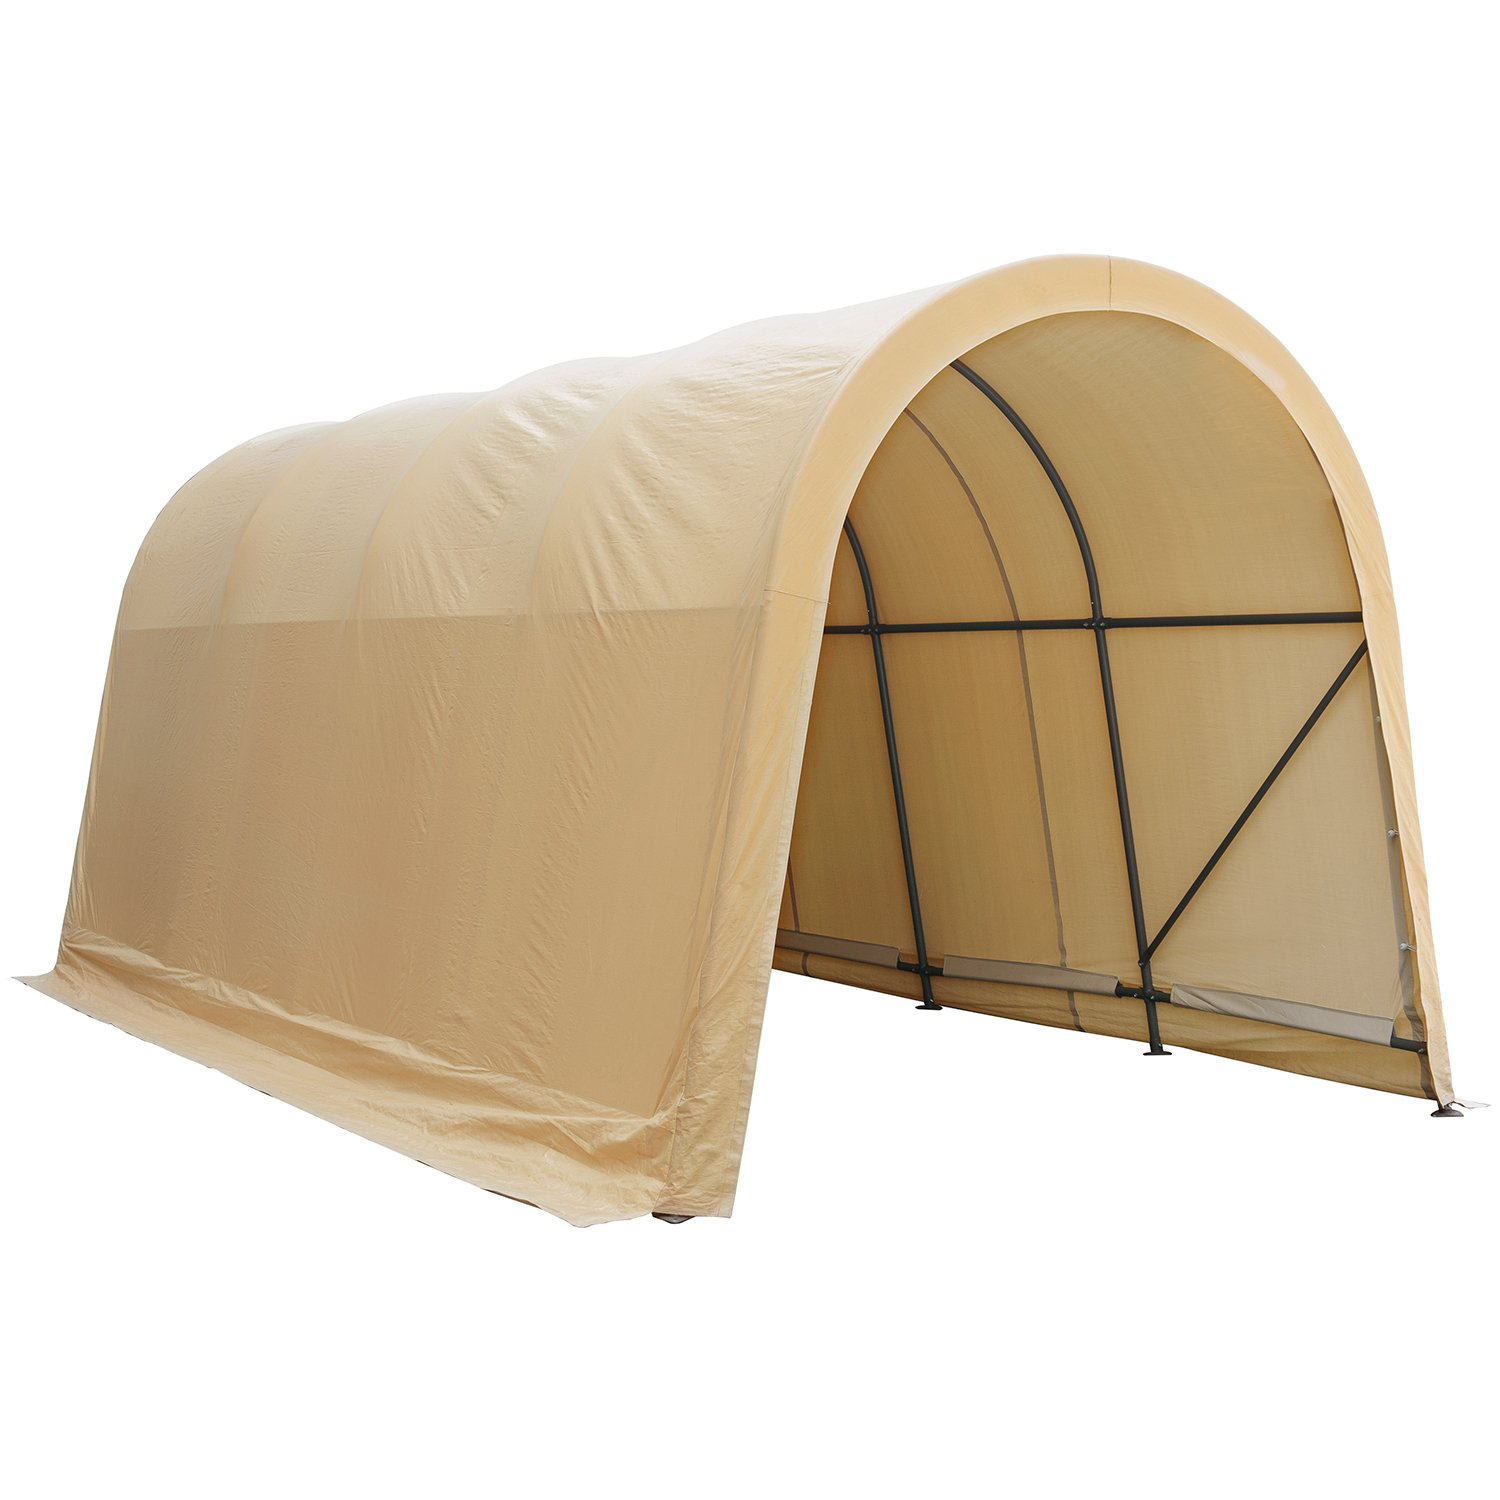 Abba Patio Garage and Shelter 10 x 20 x 9 ft Outdoor Storage Shed Heavy Duty Canopy Carport, Beige